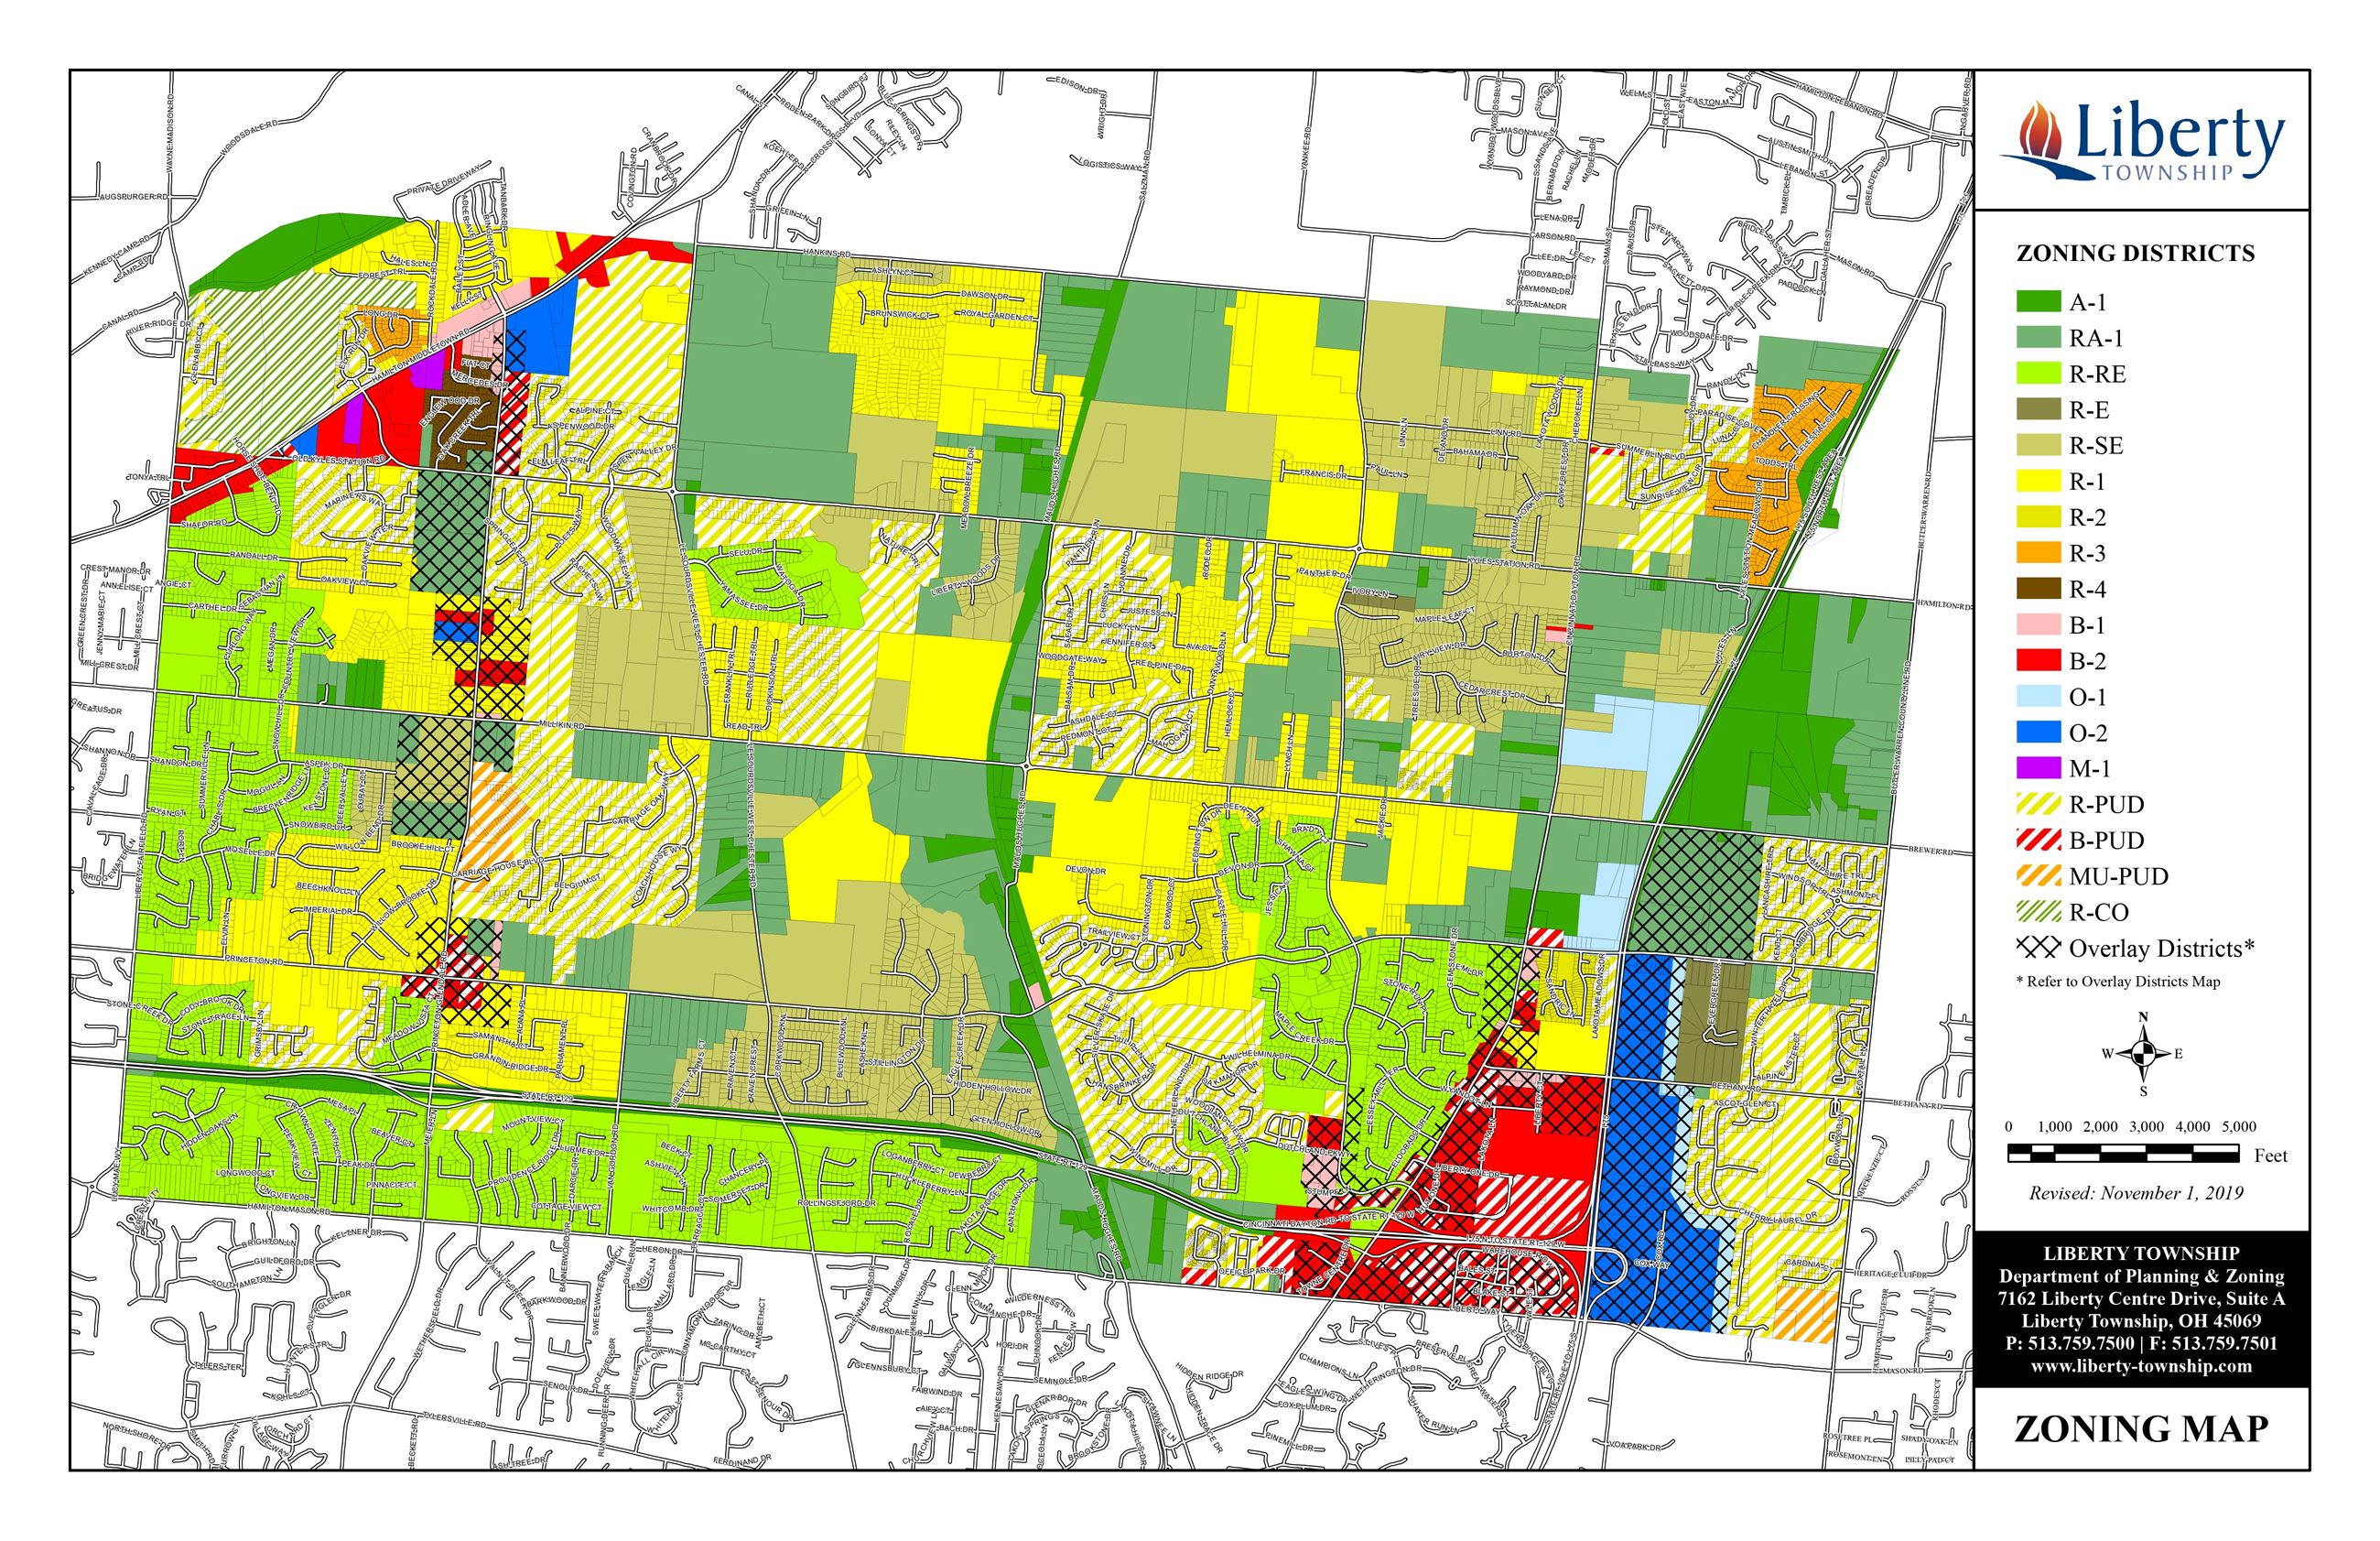 Liberty Twp Zoning Map 11.1.2019